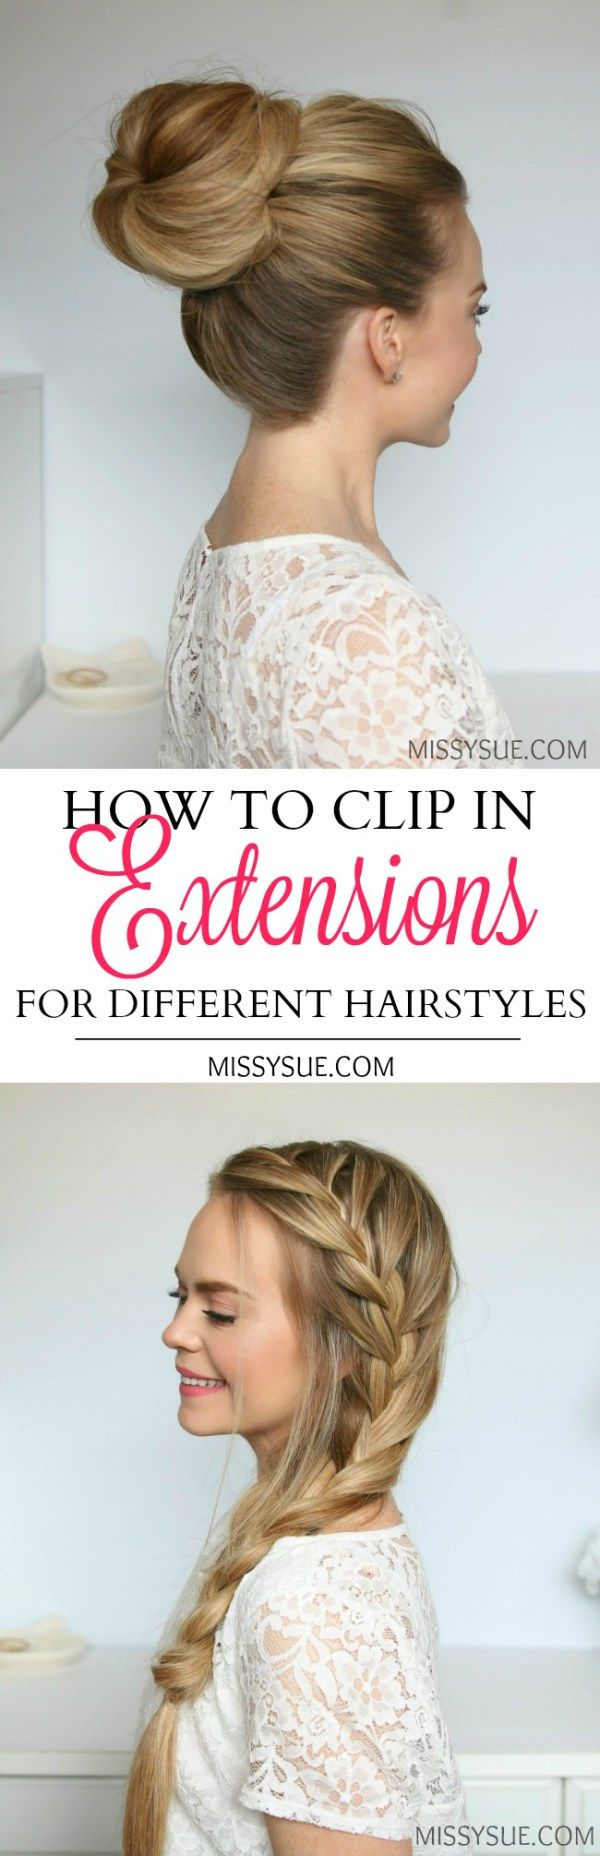 138 best Clip In Hair Extensions images on Pinterest | Clip in ...